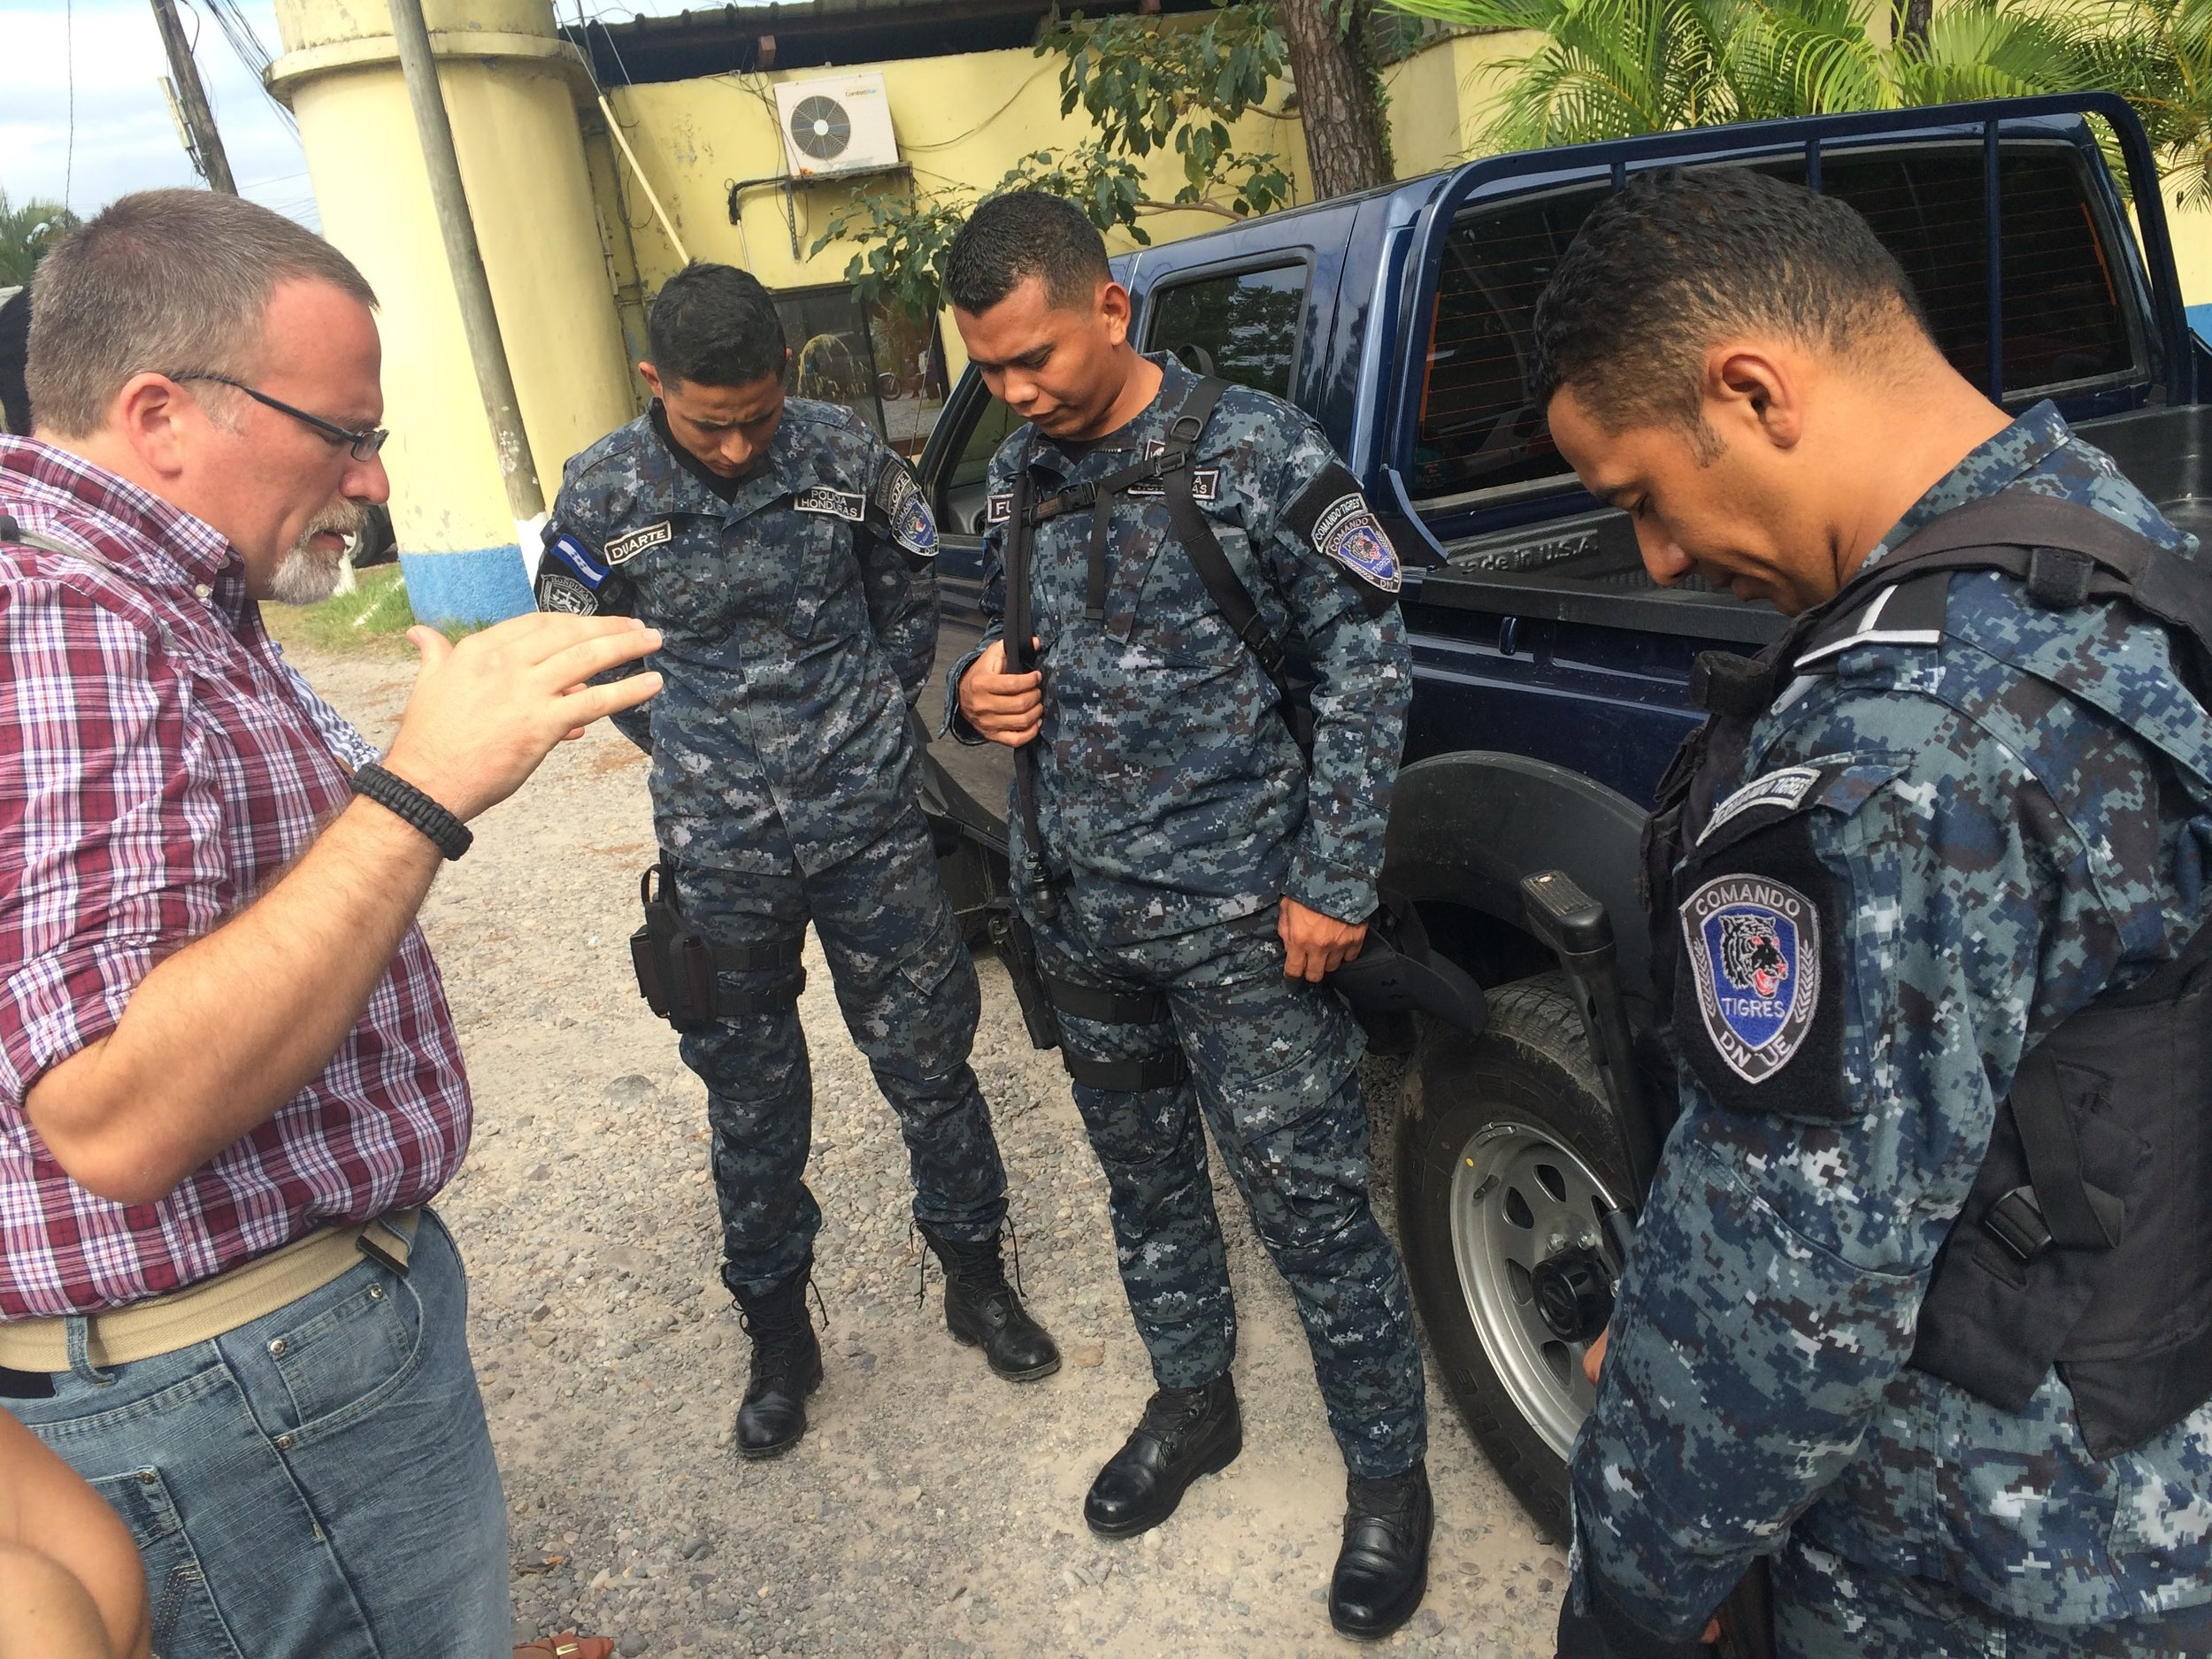 Connect Global has been investing in the local police department in La Ceiba since 2015. We are glad to support these first responders.